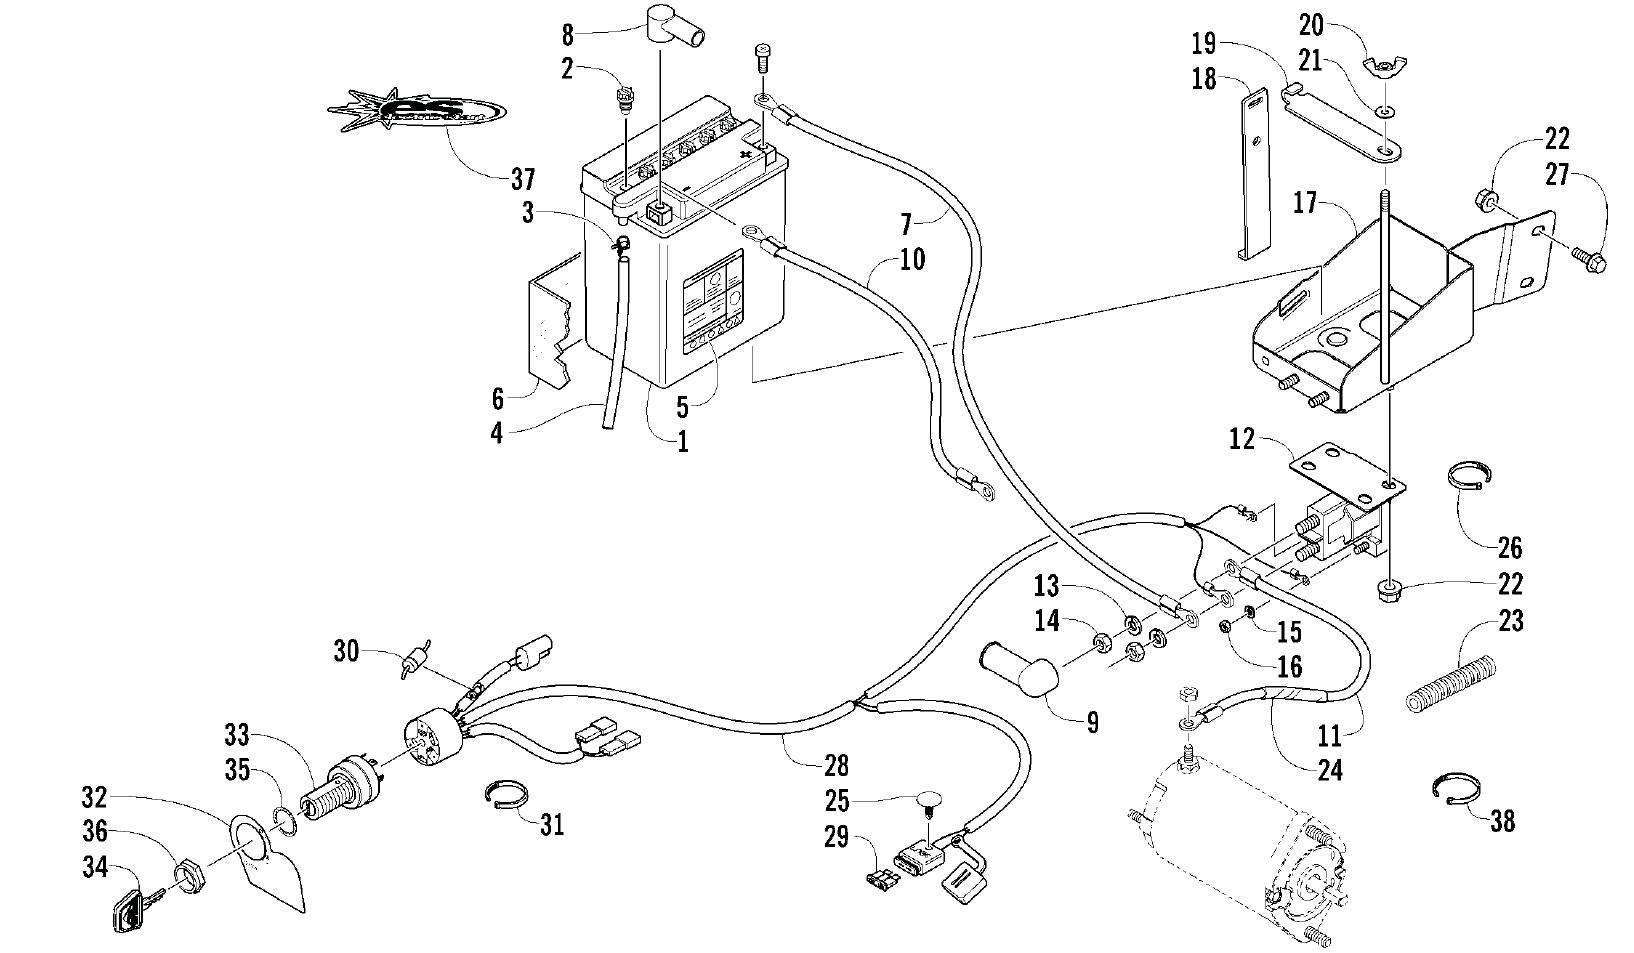 hight resolution of 1999 arctic cat zr 500 snowmobile wiring diagrams